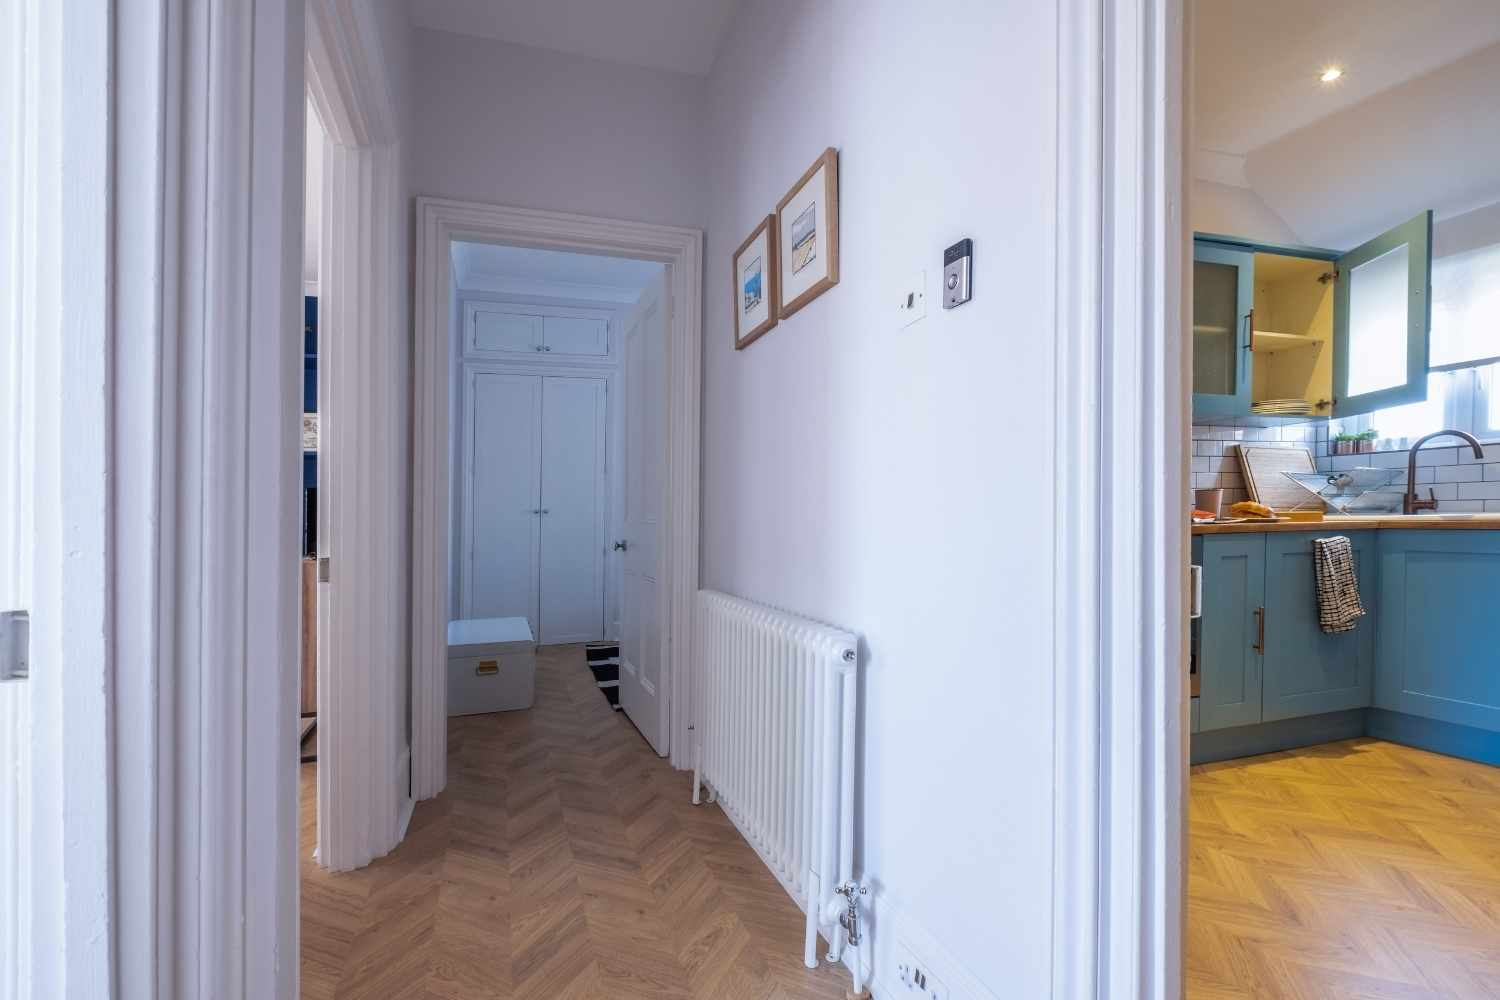 A welcoming hallway